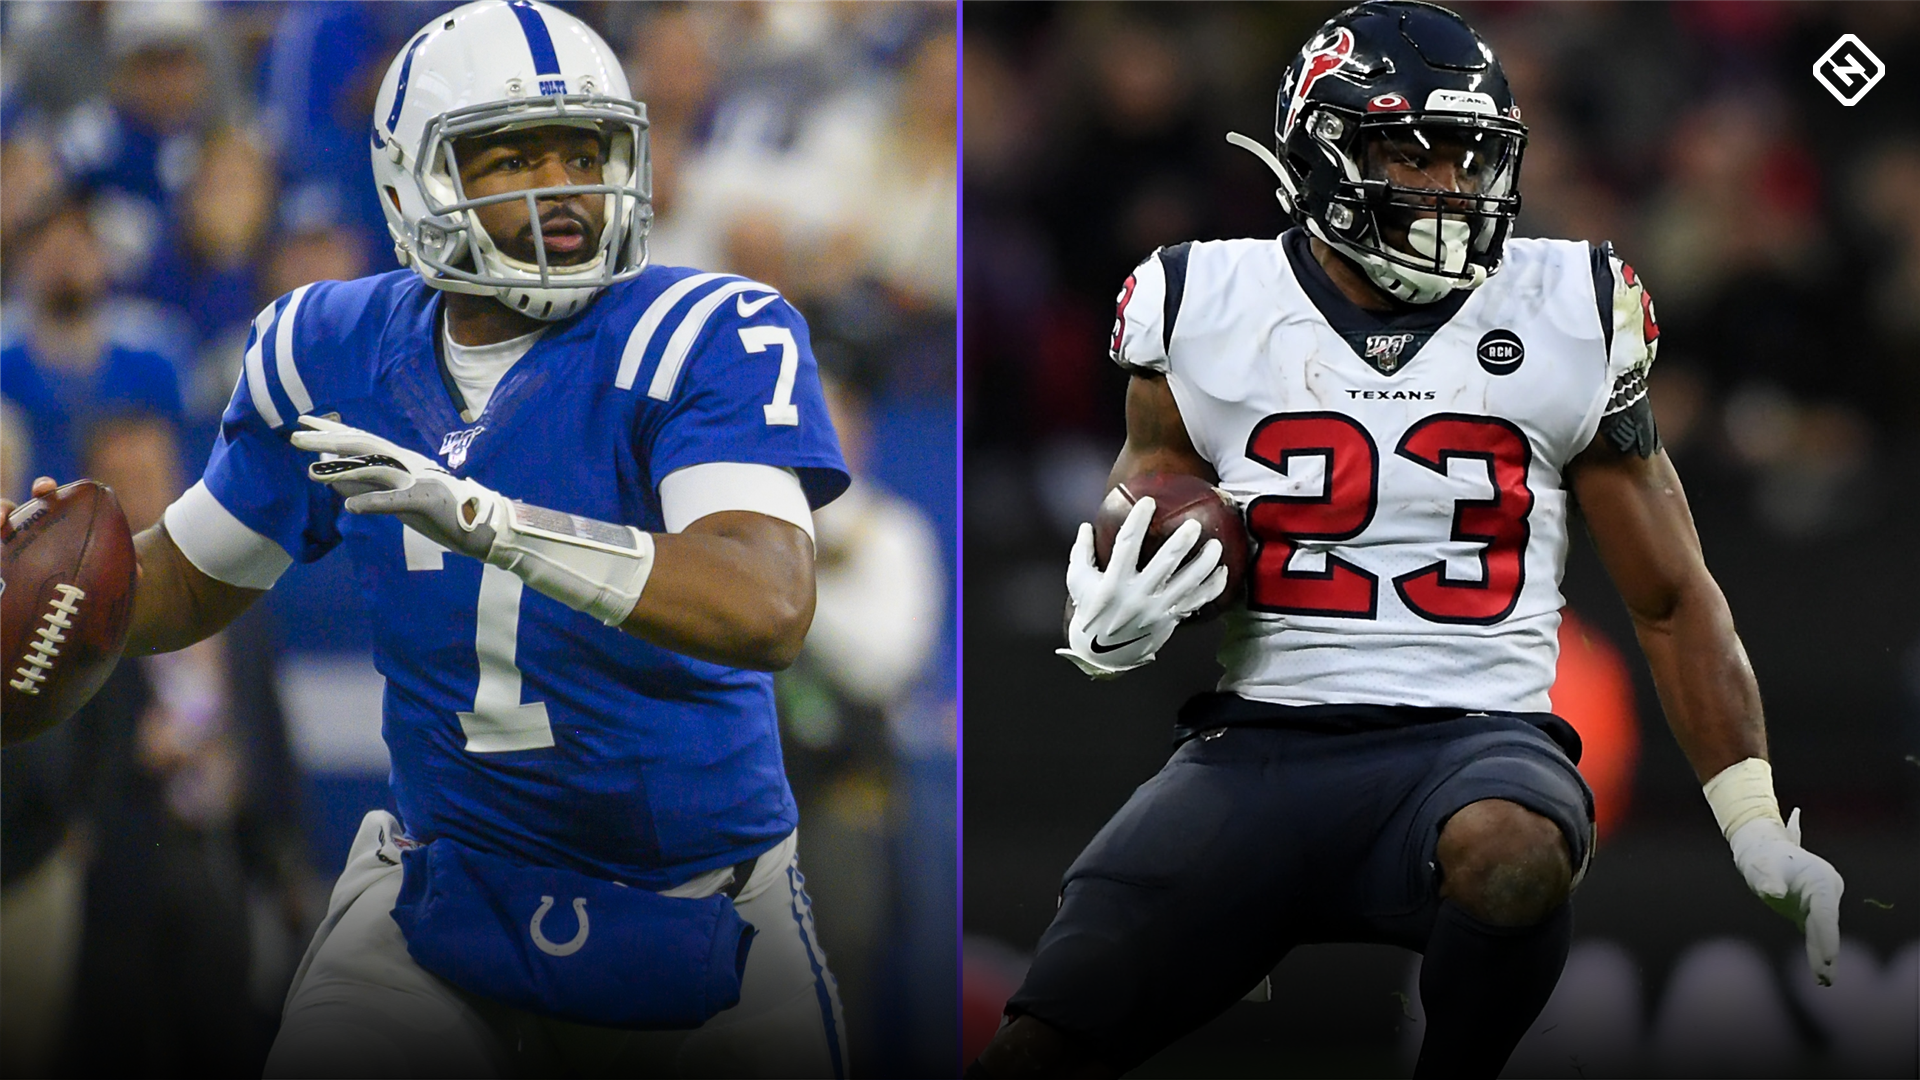 Colts vs. Texans: Who to start/sit in fantasy for 'Thursday Night Football'